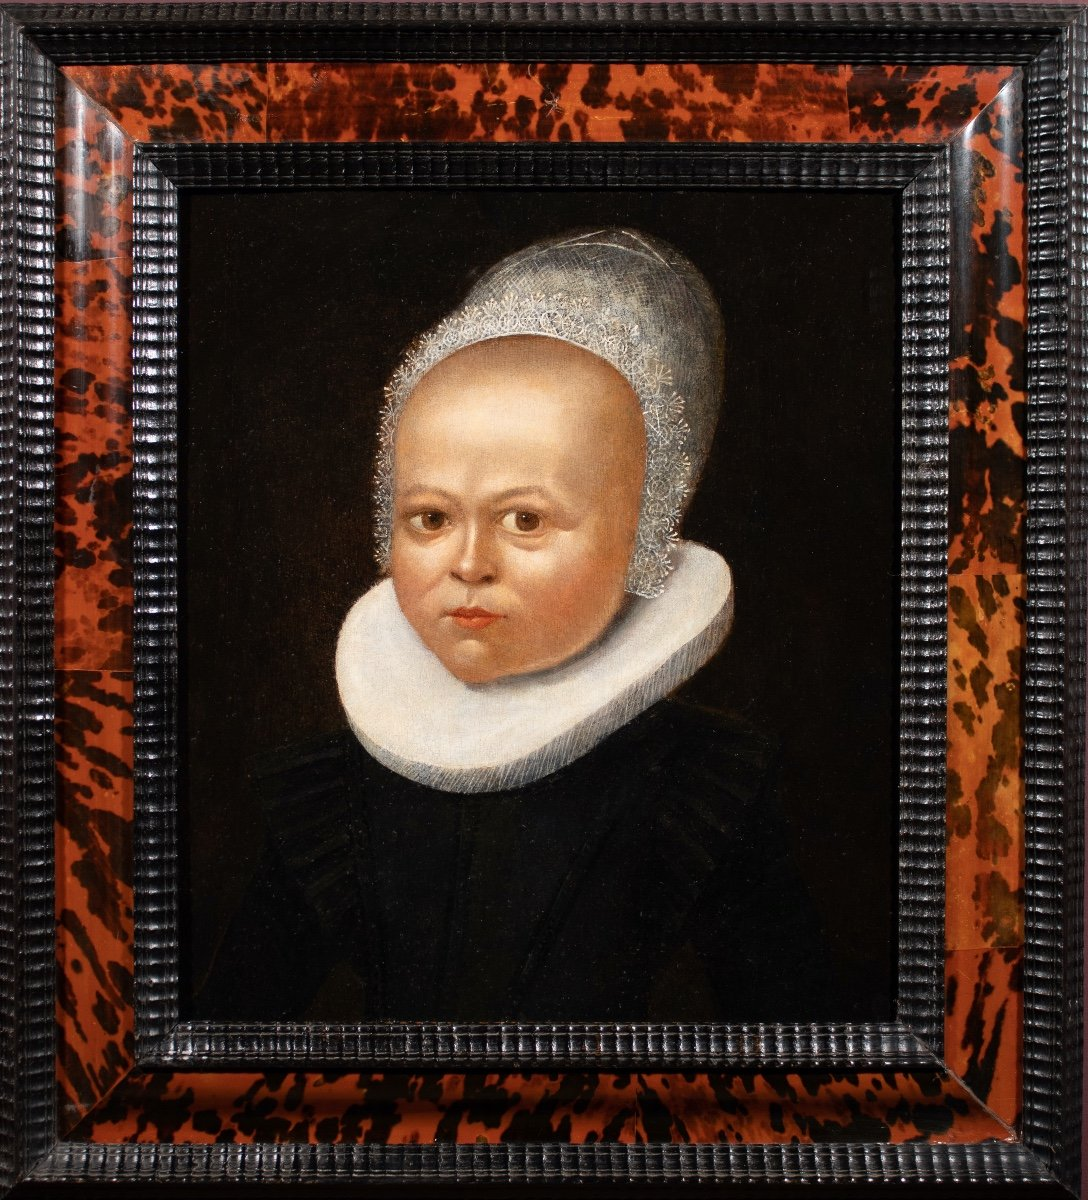 Portrait Of Child In Lace Cap. Flemish School Of The XVIth Century